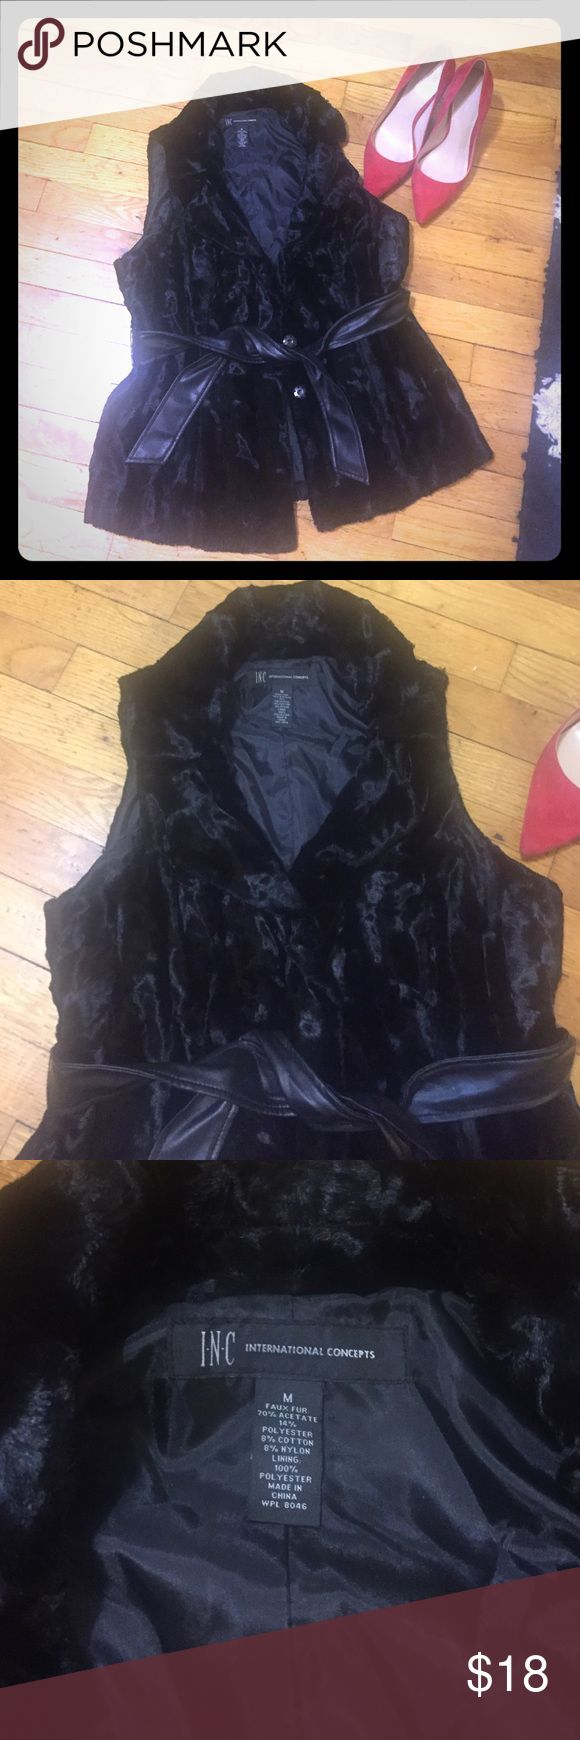 INC black faux fur vest with faux leather belt Beautiful faux fur vest for winter! Not bulky and barely worn Jackets & Coats Vests